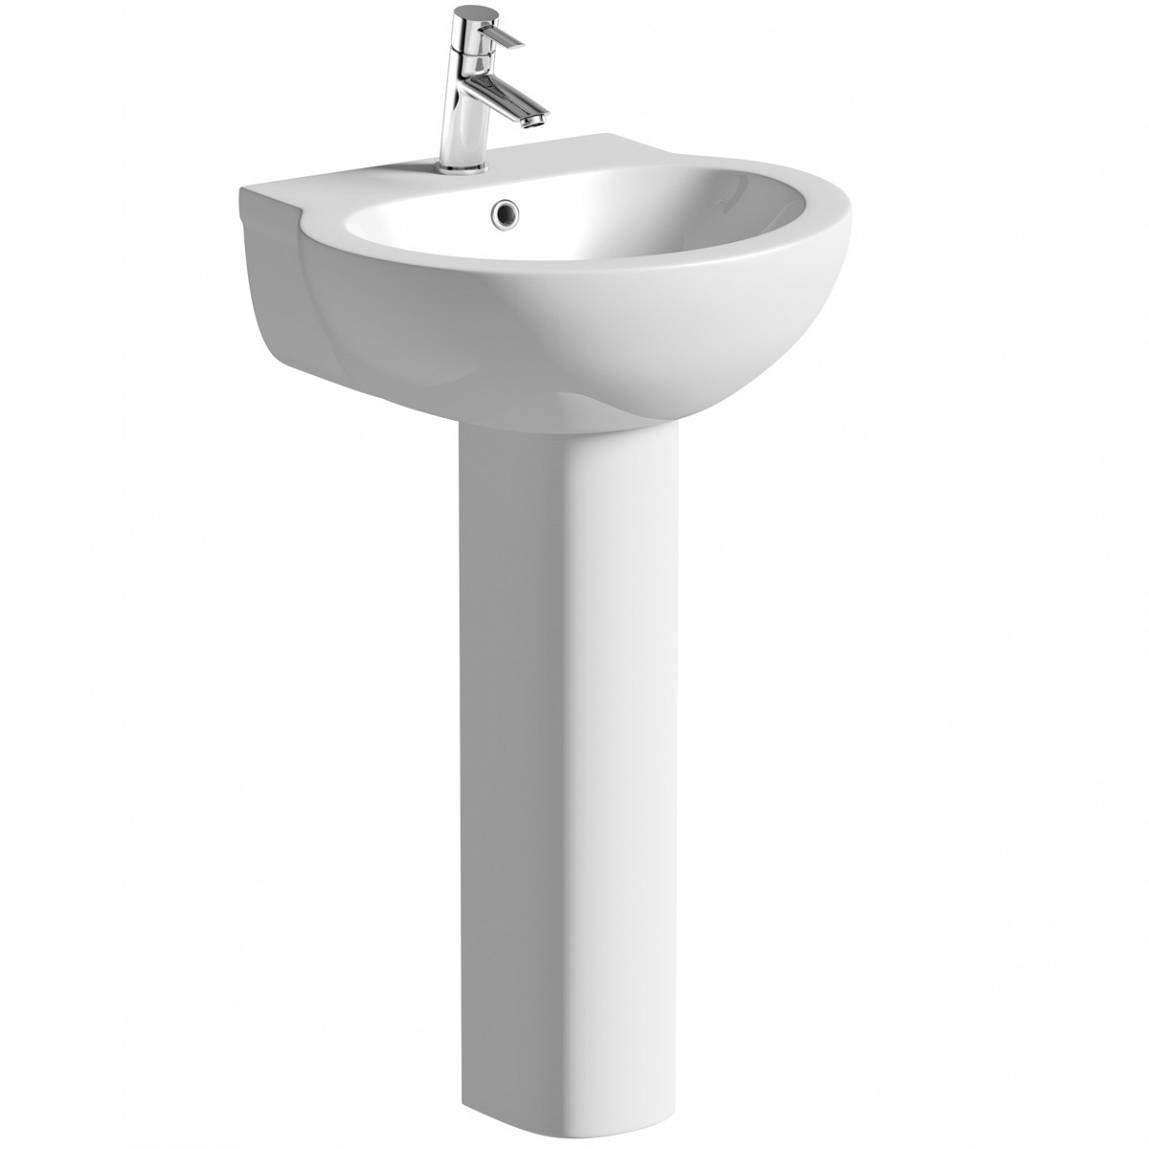 Orchard Madison 1 tap hole full pedestal basin 540mm with waste